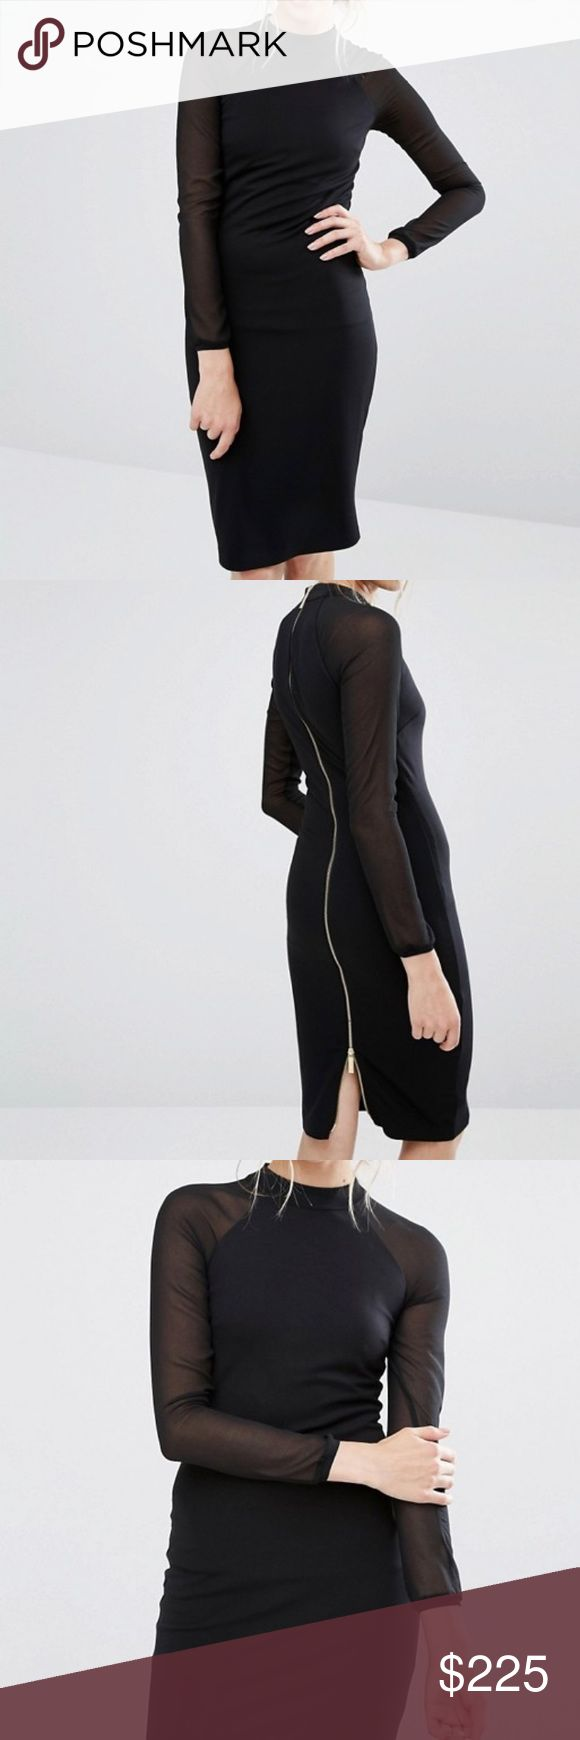 NWT Ted Baker Black Fitted long sleeve Dress New with Tags! Ted Baker Fitted black dress, with long sheer sleeves and gold zippered back detail. Zipper can be pulled up for a slit in back. The perfect LBD for fall and winter! Retail $315 Ted Baker Dresses Long Sleeve